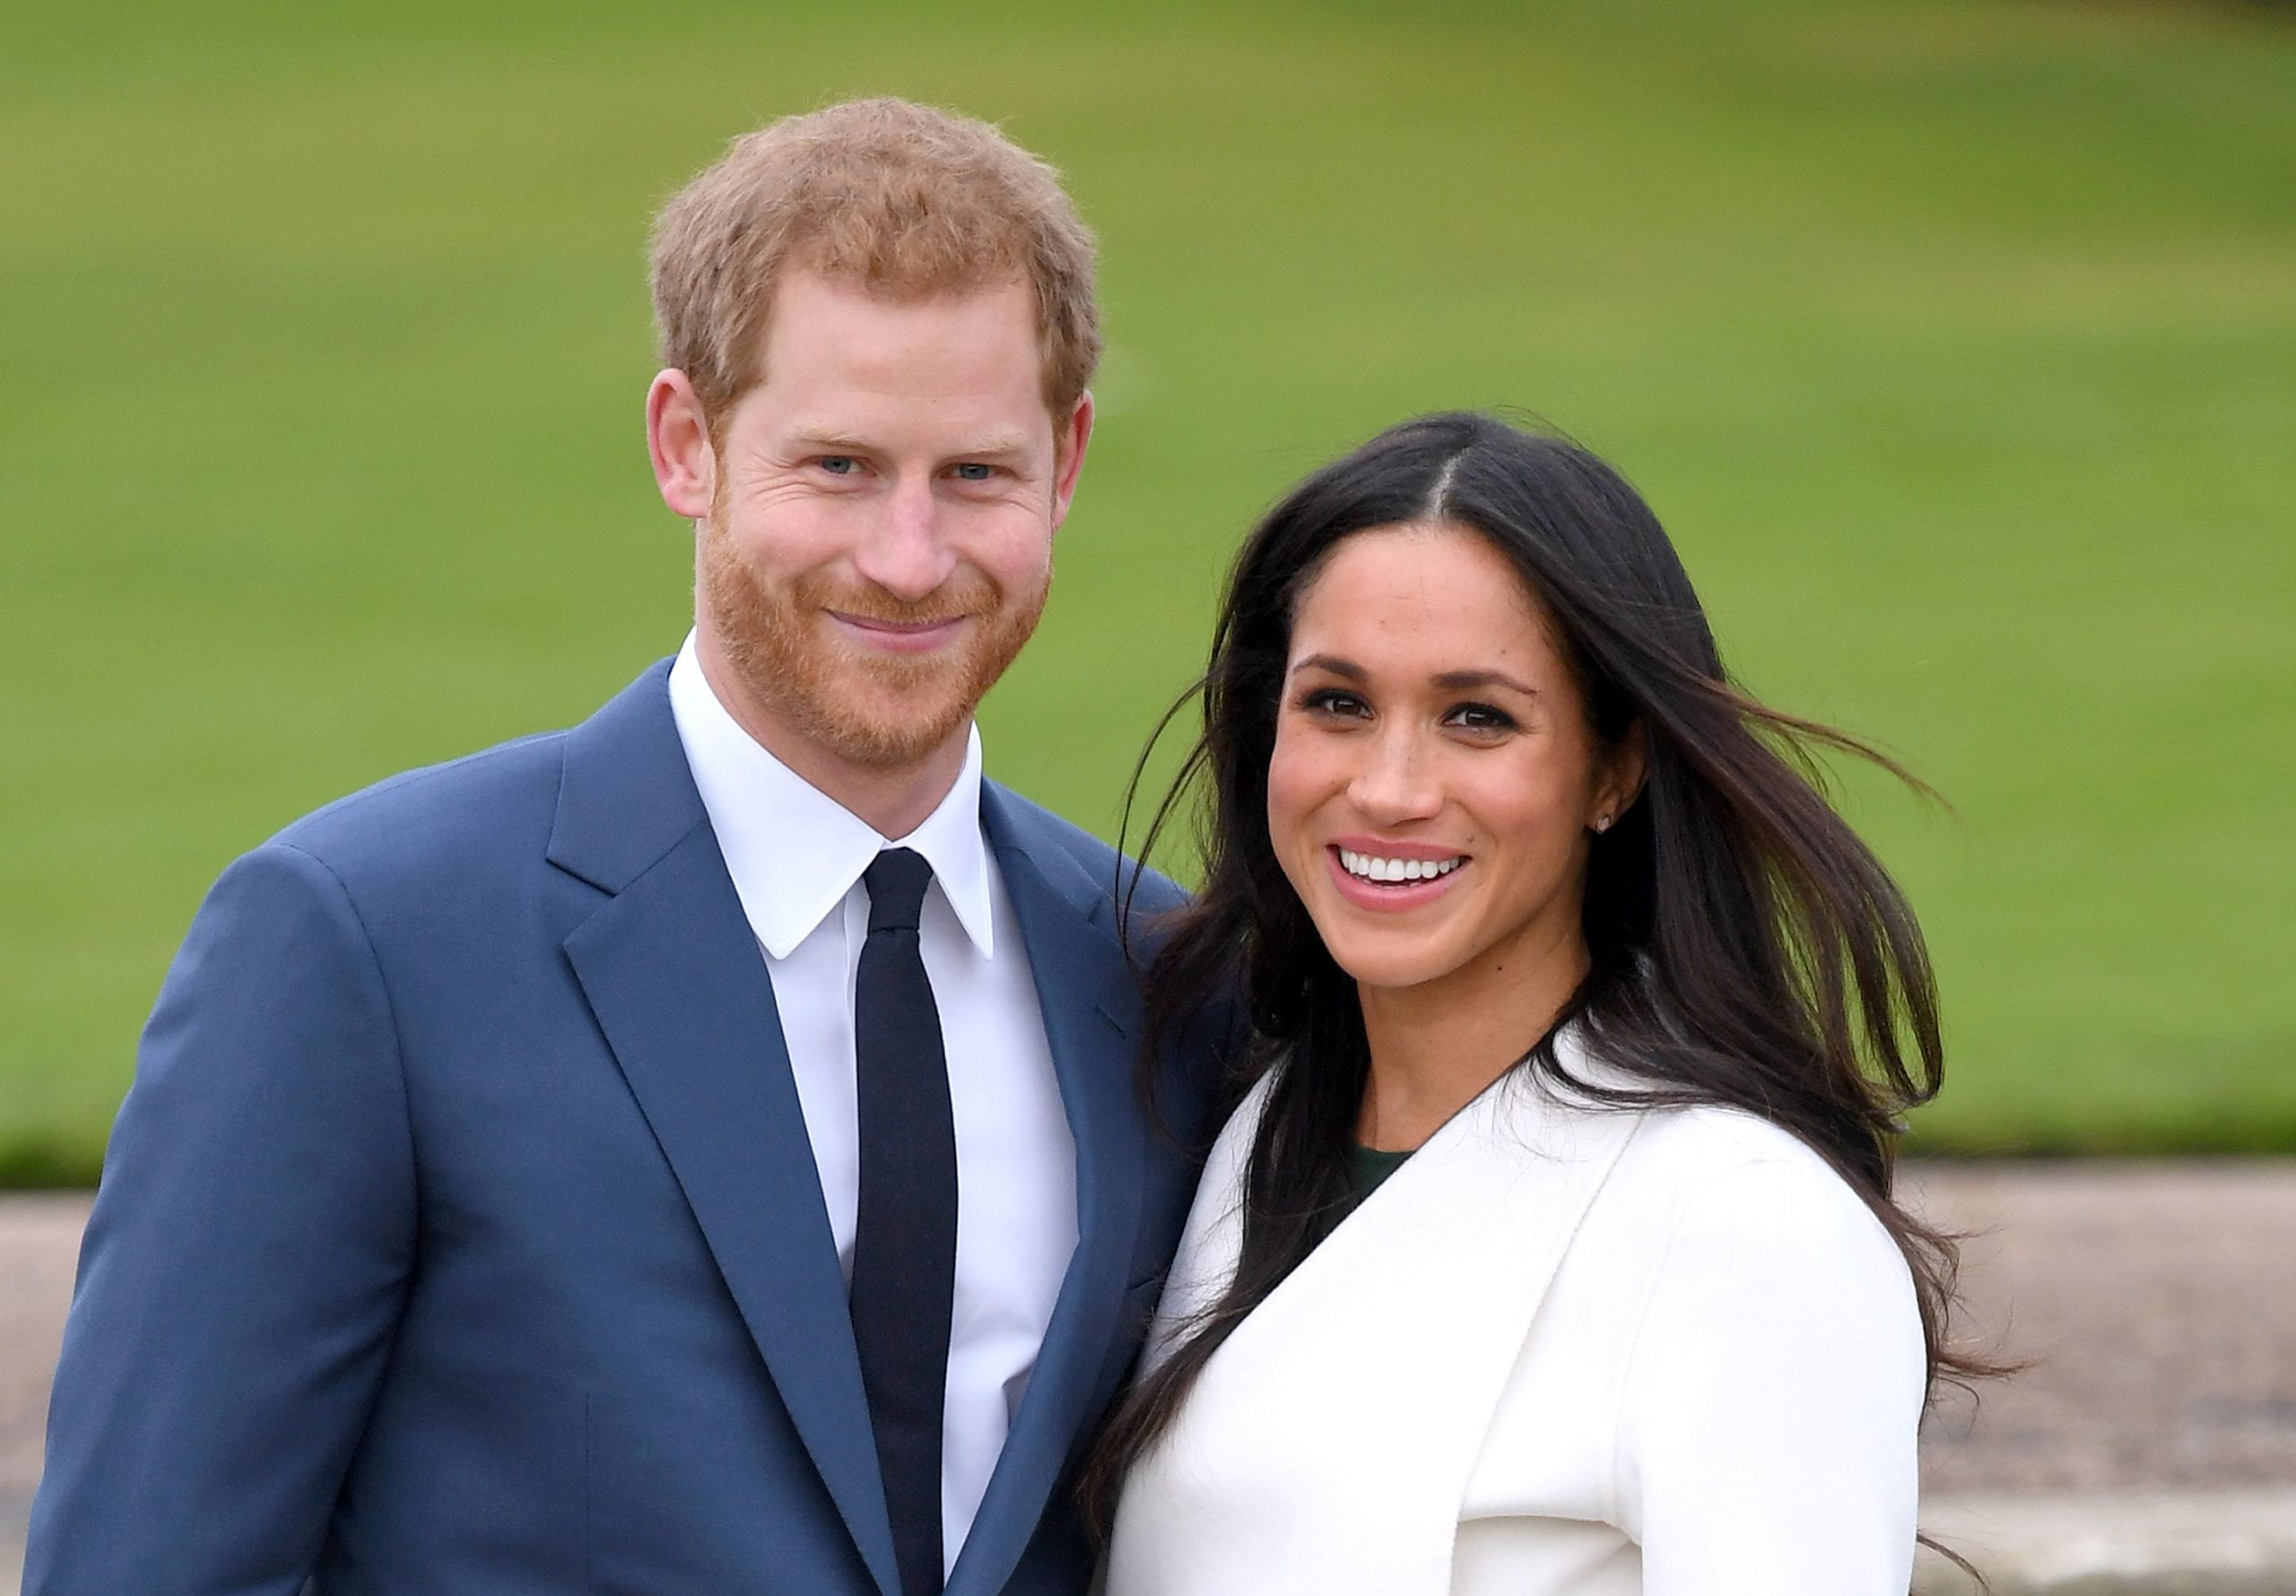 Meghan Markle confirms her dad won't walk her down the aisle